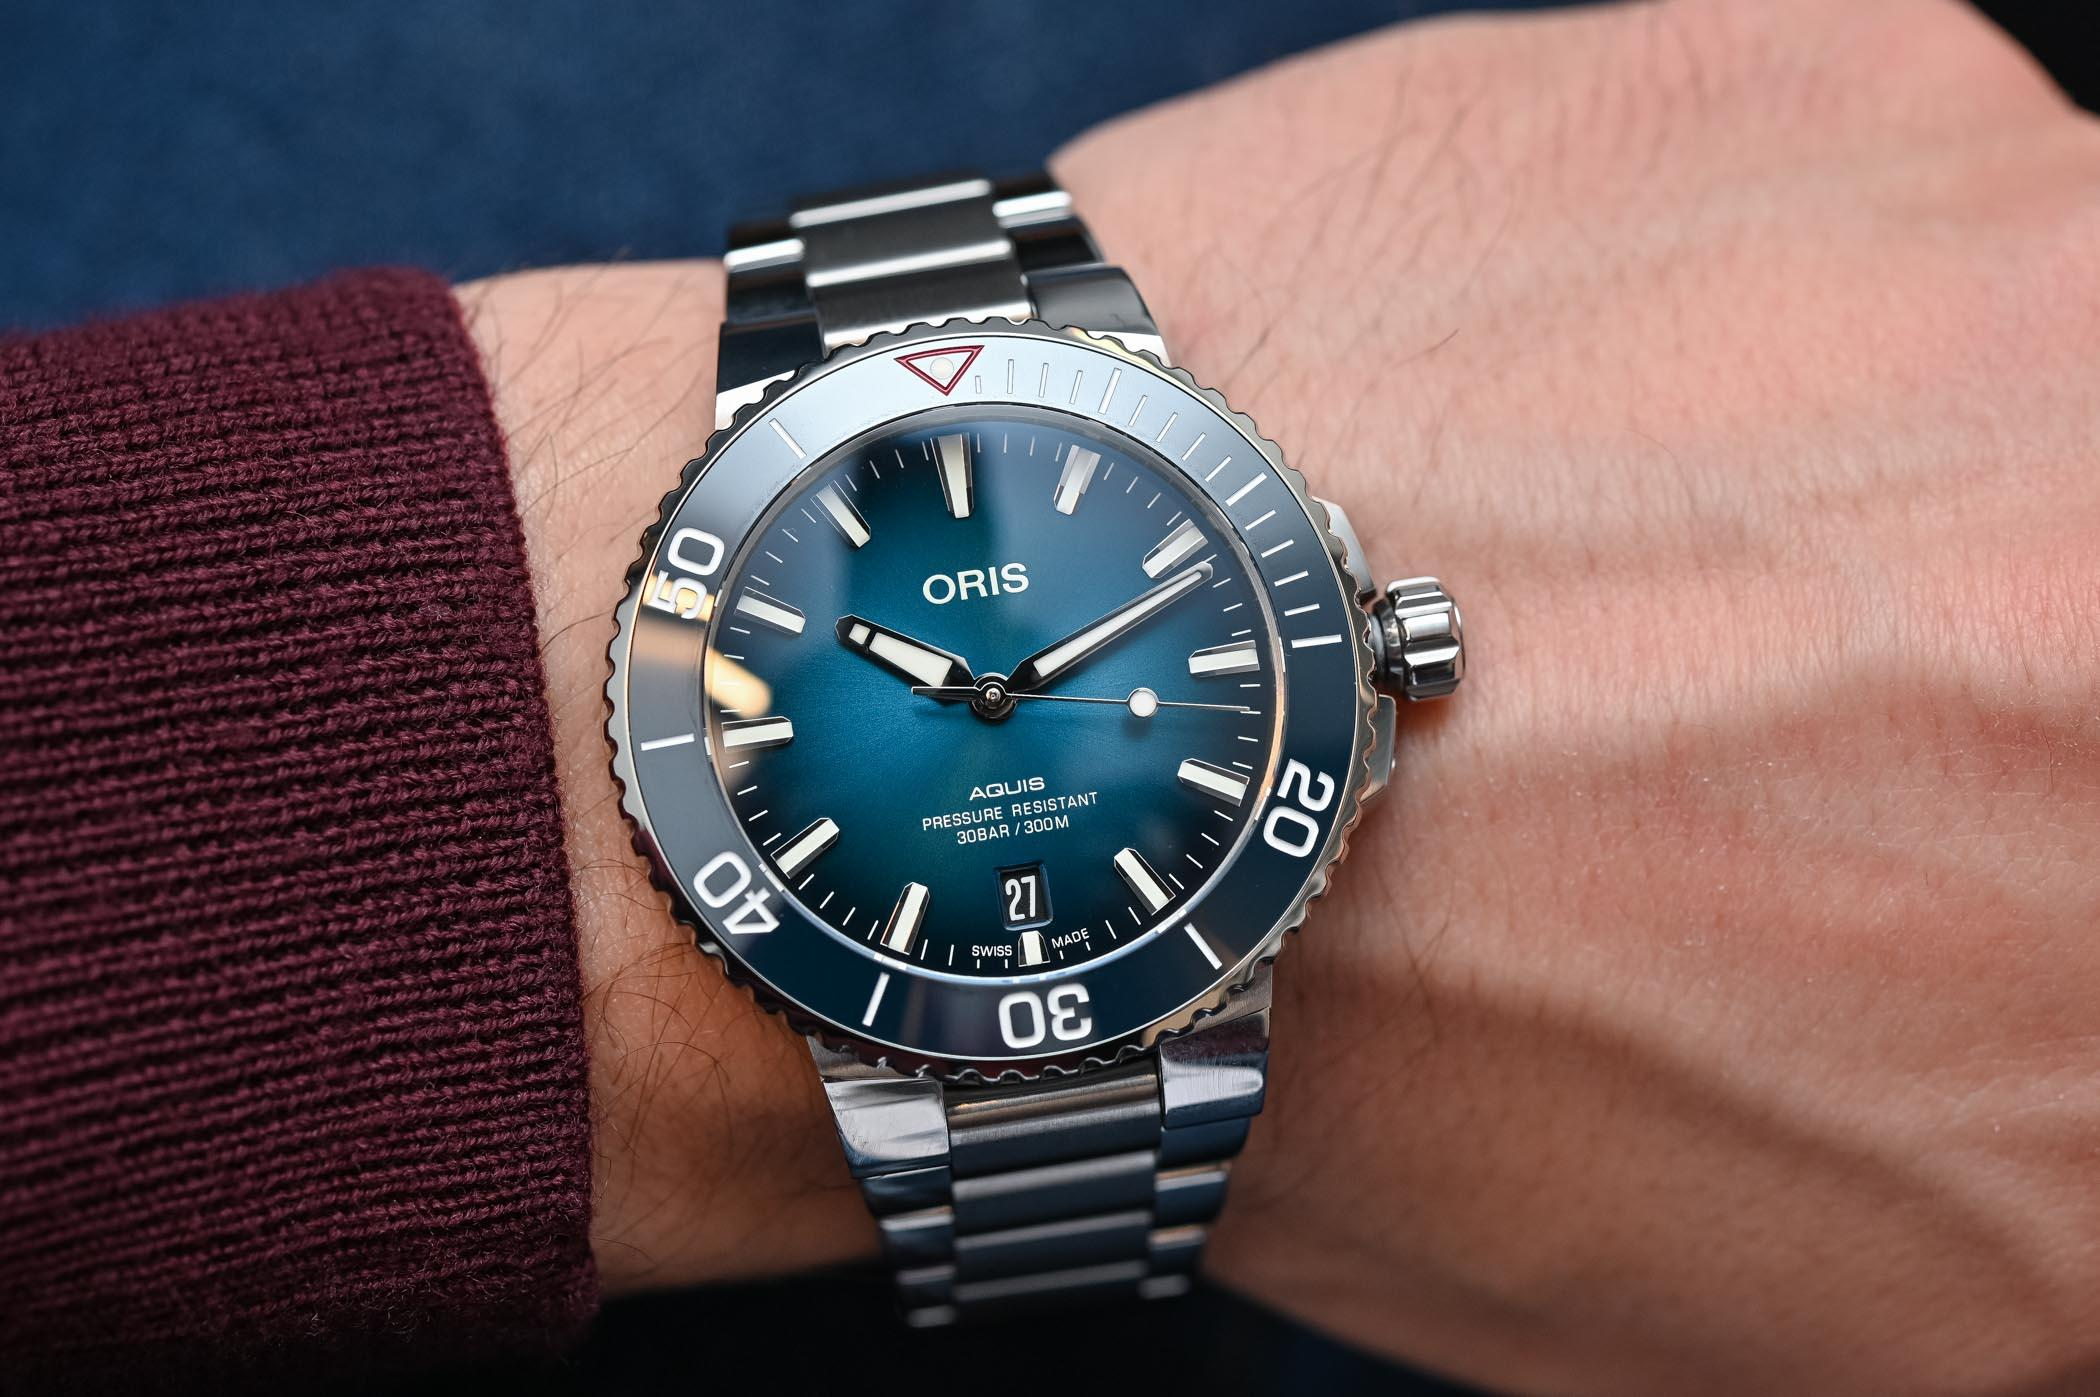 Video - The Oris Watches of Baselworld 2019 Explained by Co-CEO Rolf Studer